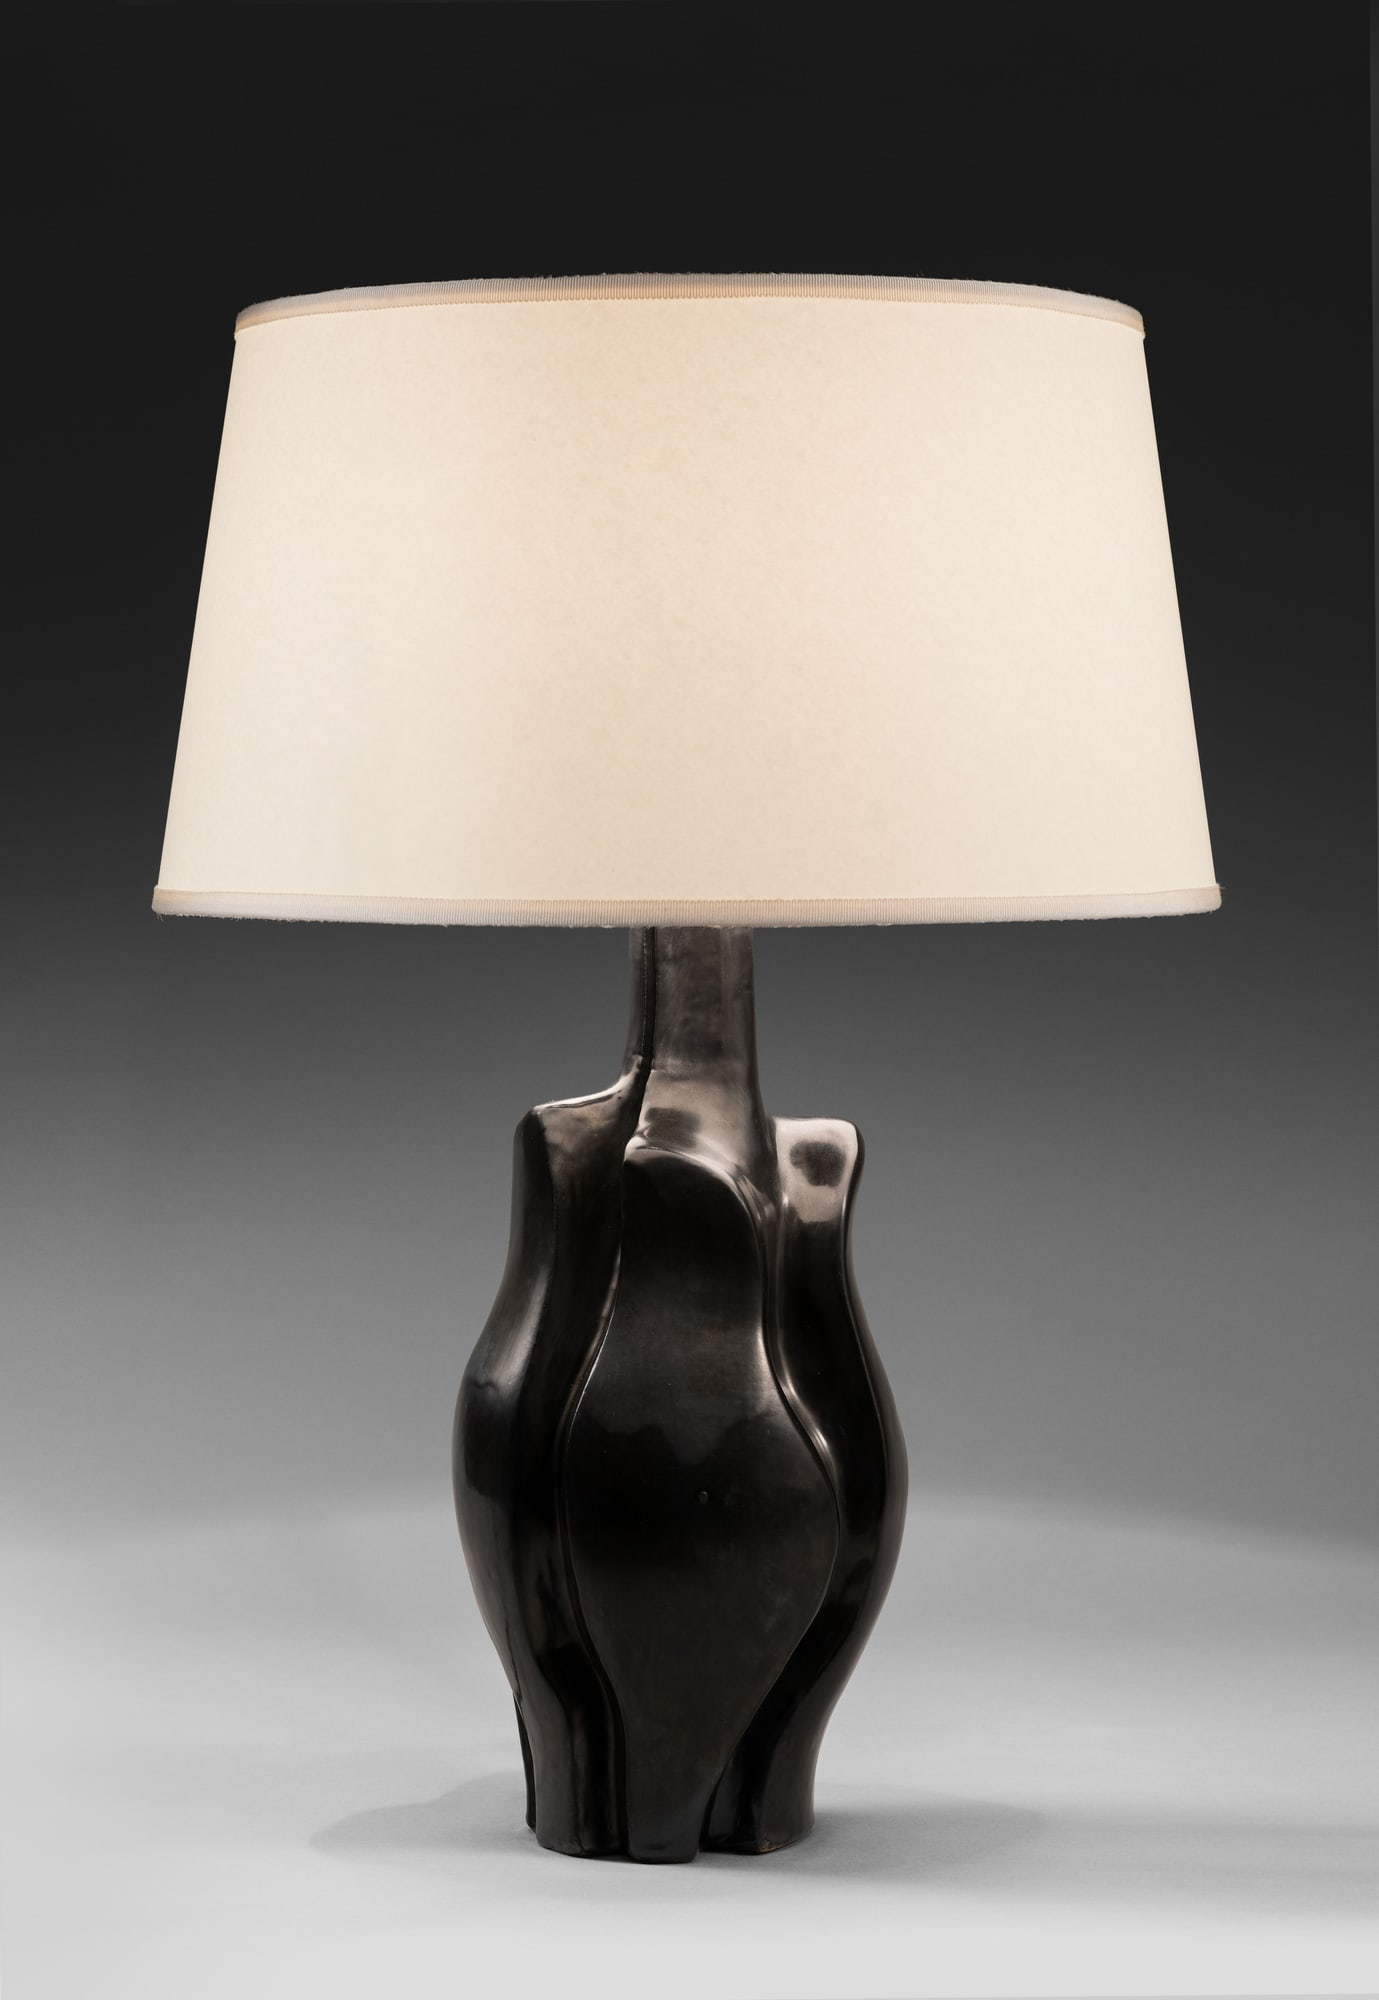 Black lamp, vue 01